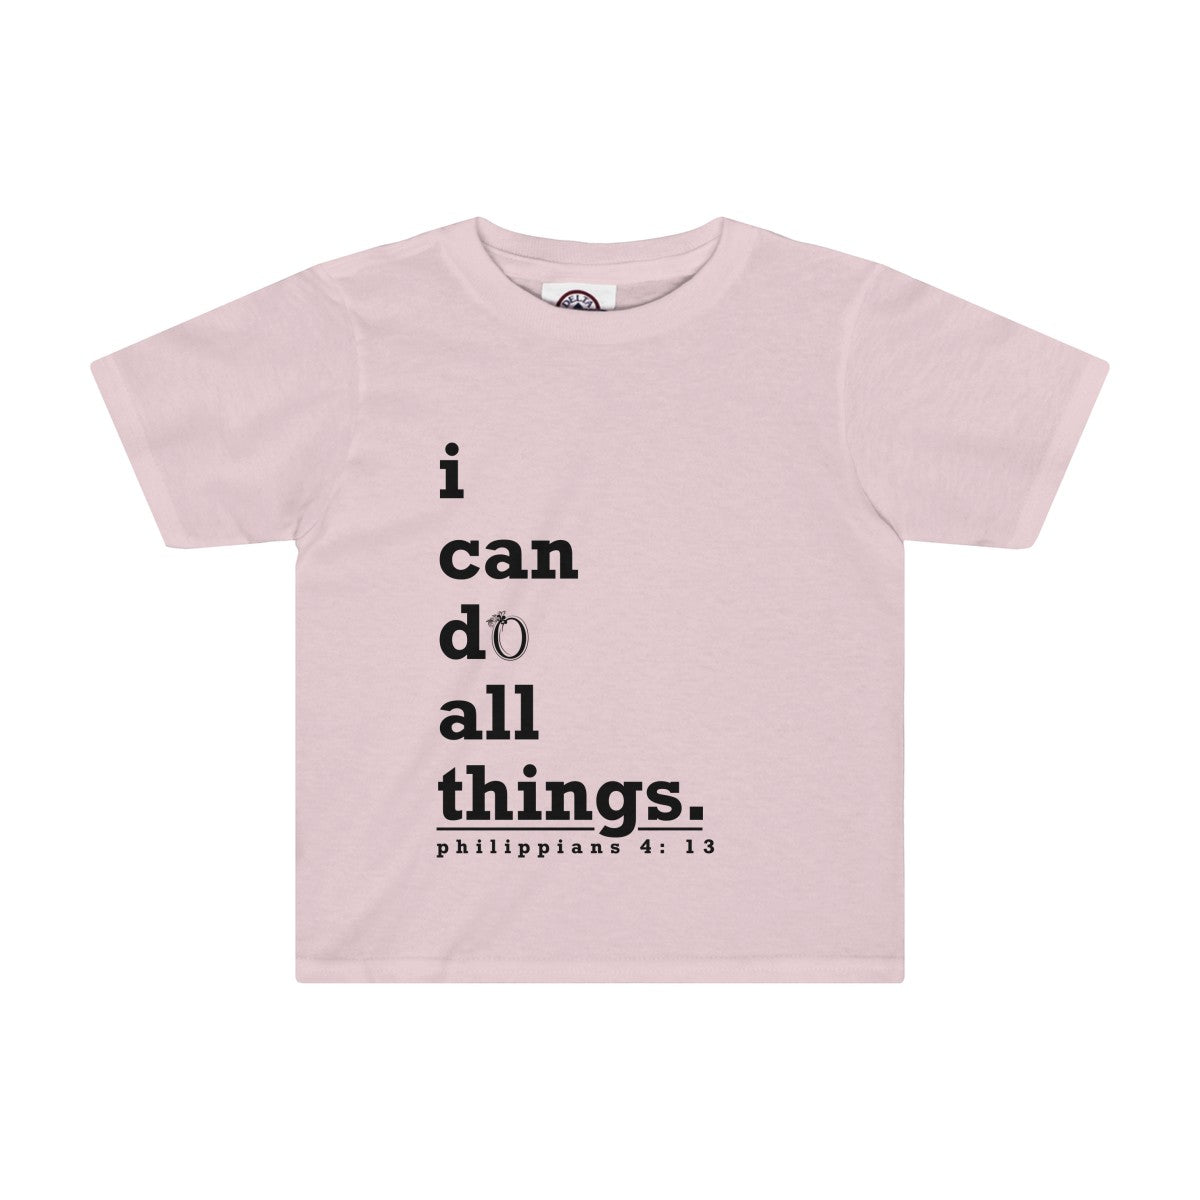 Odyssey I Can Do Kids Tee - Light - Kids clothes - Odyssey By Yendi